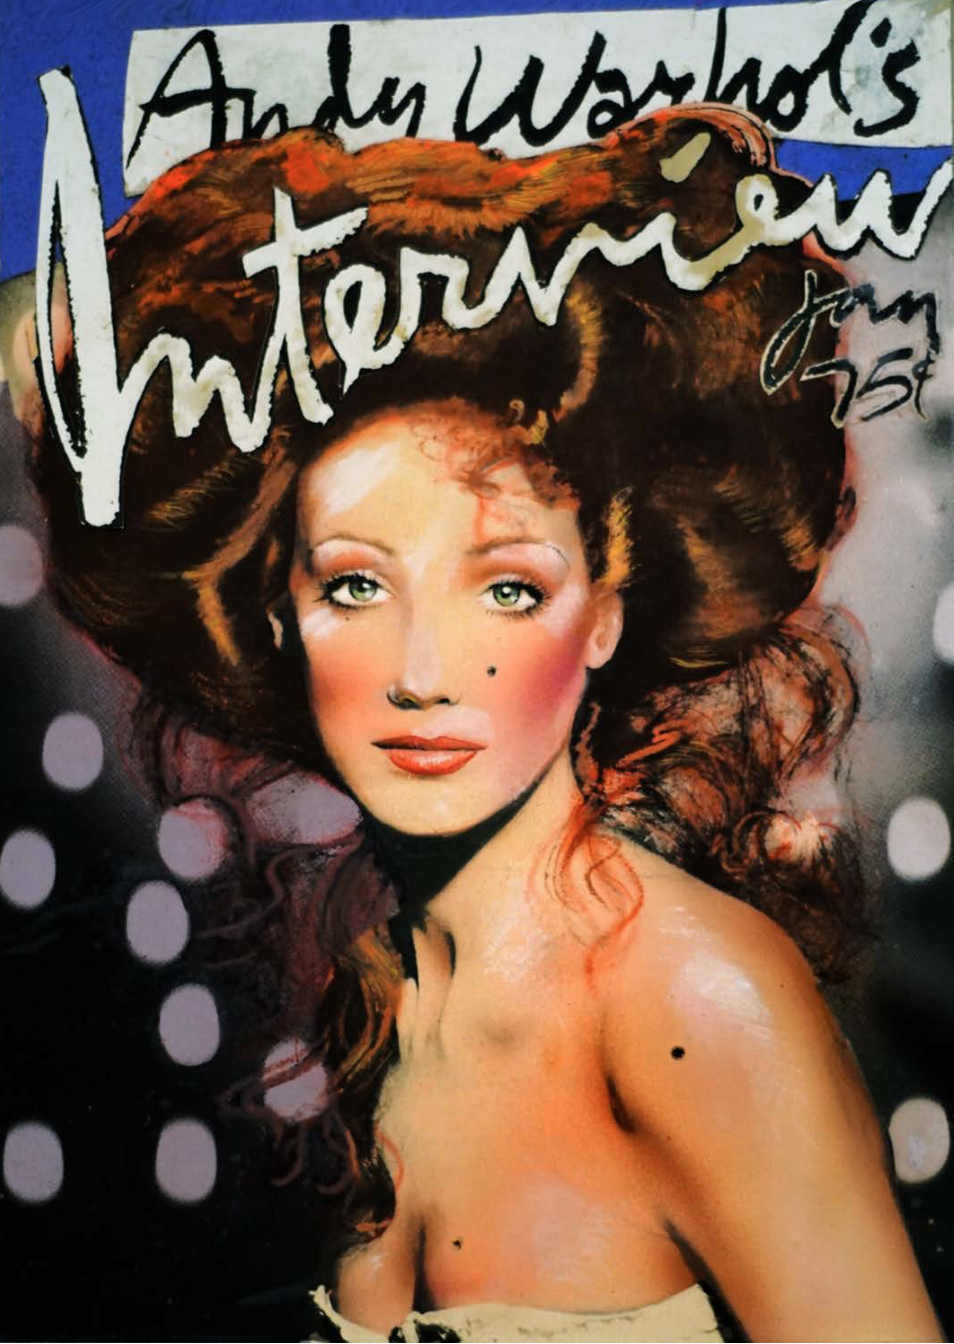 Cover Designed and Painted by Richard Bernstein